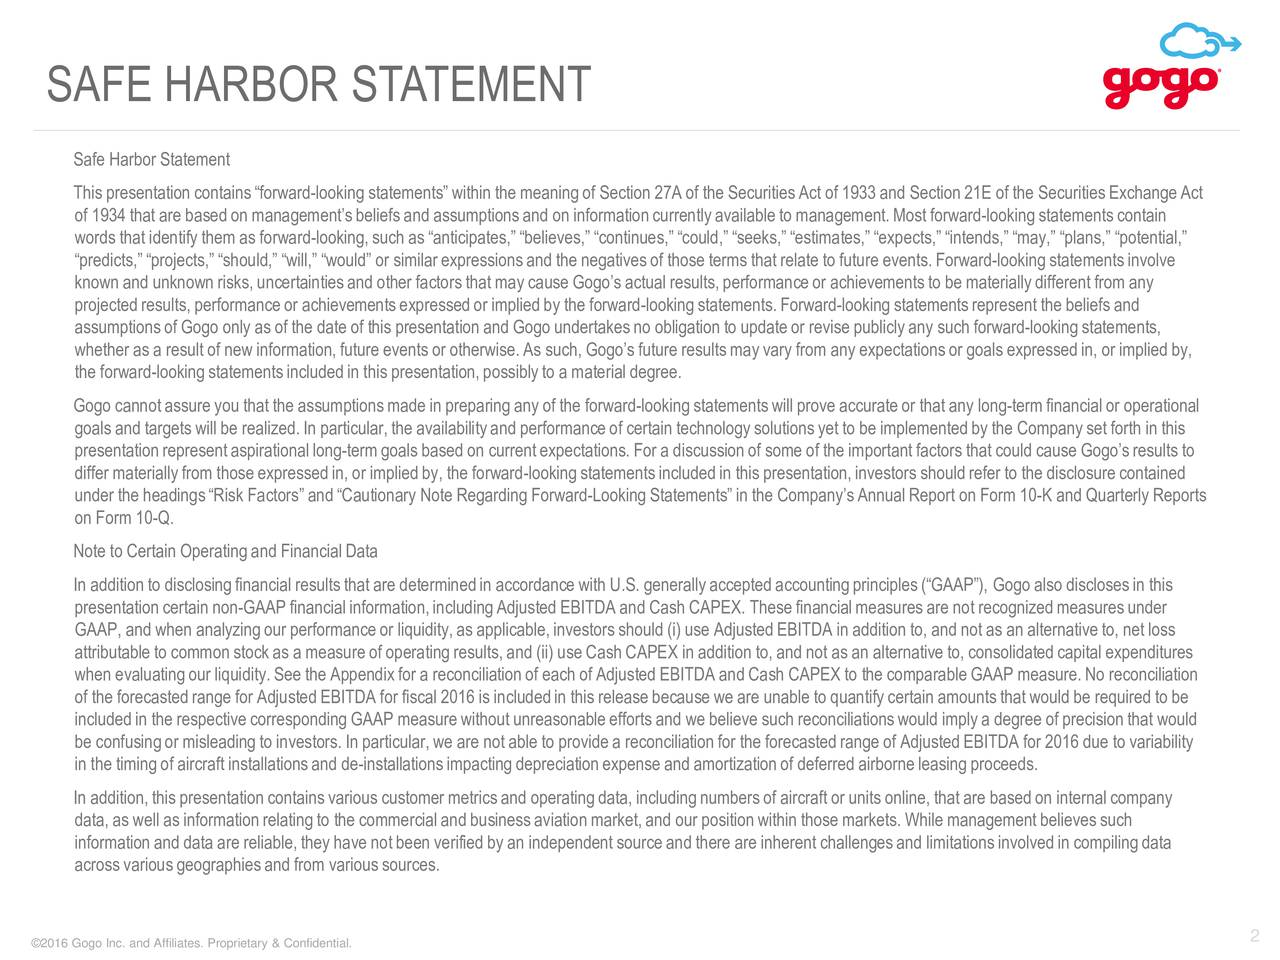 Safe Harbor Statement This presentation containsforward-lookingstatements within the meaningof Section 27A of the SecuritiesAct of 1933 and Section 21E of the SecuritiesExchange Act of 1934 that are based on managementsbeliefs and assumptionsand on informationcurrently availableto management.Most forward-looking statementscontain words that identify them as forward-looking, such as anticipates, believes, continues, could, seeks, estimates, expects, intends, may, plans, potential, predicts, projects, should, will, would or similar expressionsand the negativesof those terms that relate to future events.Forward-looking statementsinvolve known and unknown risks, uncertaintiesand other factors that may cause Gogos actual results, performanceor achievementsto be materiallydifferent from any projectedresults, performanceor achievementsexpressed or implied by the forward-looking statements.Forward-looking statementsrepresent the beliefs and assumptionsof Gogo only as of the date of this presentation and Gogo undertakesno obligation to update or revise publiclyany such forward-looking statements, whether as a result of new information, future events or otherwise. As such, Gogos future results may vary from any expectationsor goals expressed in, or implied by, the forward-lookingstatementsincludedin this presentation, possibly to a material degree. Gogo cannotassure you that the assumptionsmade in preparing any of the forward-lookingstatementswill prove accurateor that any long-termfinancial or operational goals and targets will be realized. In particular,the availabilityand performanceof certain technologysolutionsyet to be implementedby the Company set forth in this presentationrepresent aspirational long-termgoals based on current expectations. For a discussionof some of the important factors that could cause Gogos results to differ materiallyfrom those expressedin, or implied by, the forward-looking statements includedin this presentation,investors should refer to the dis